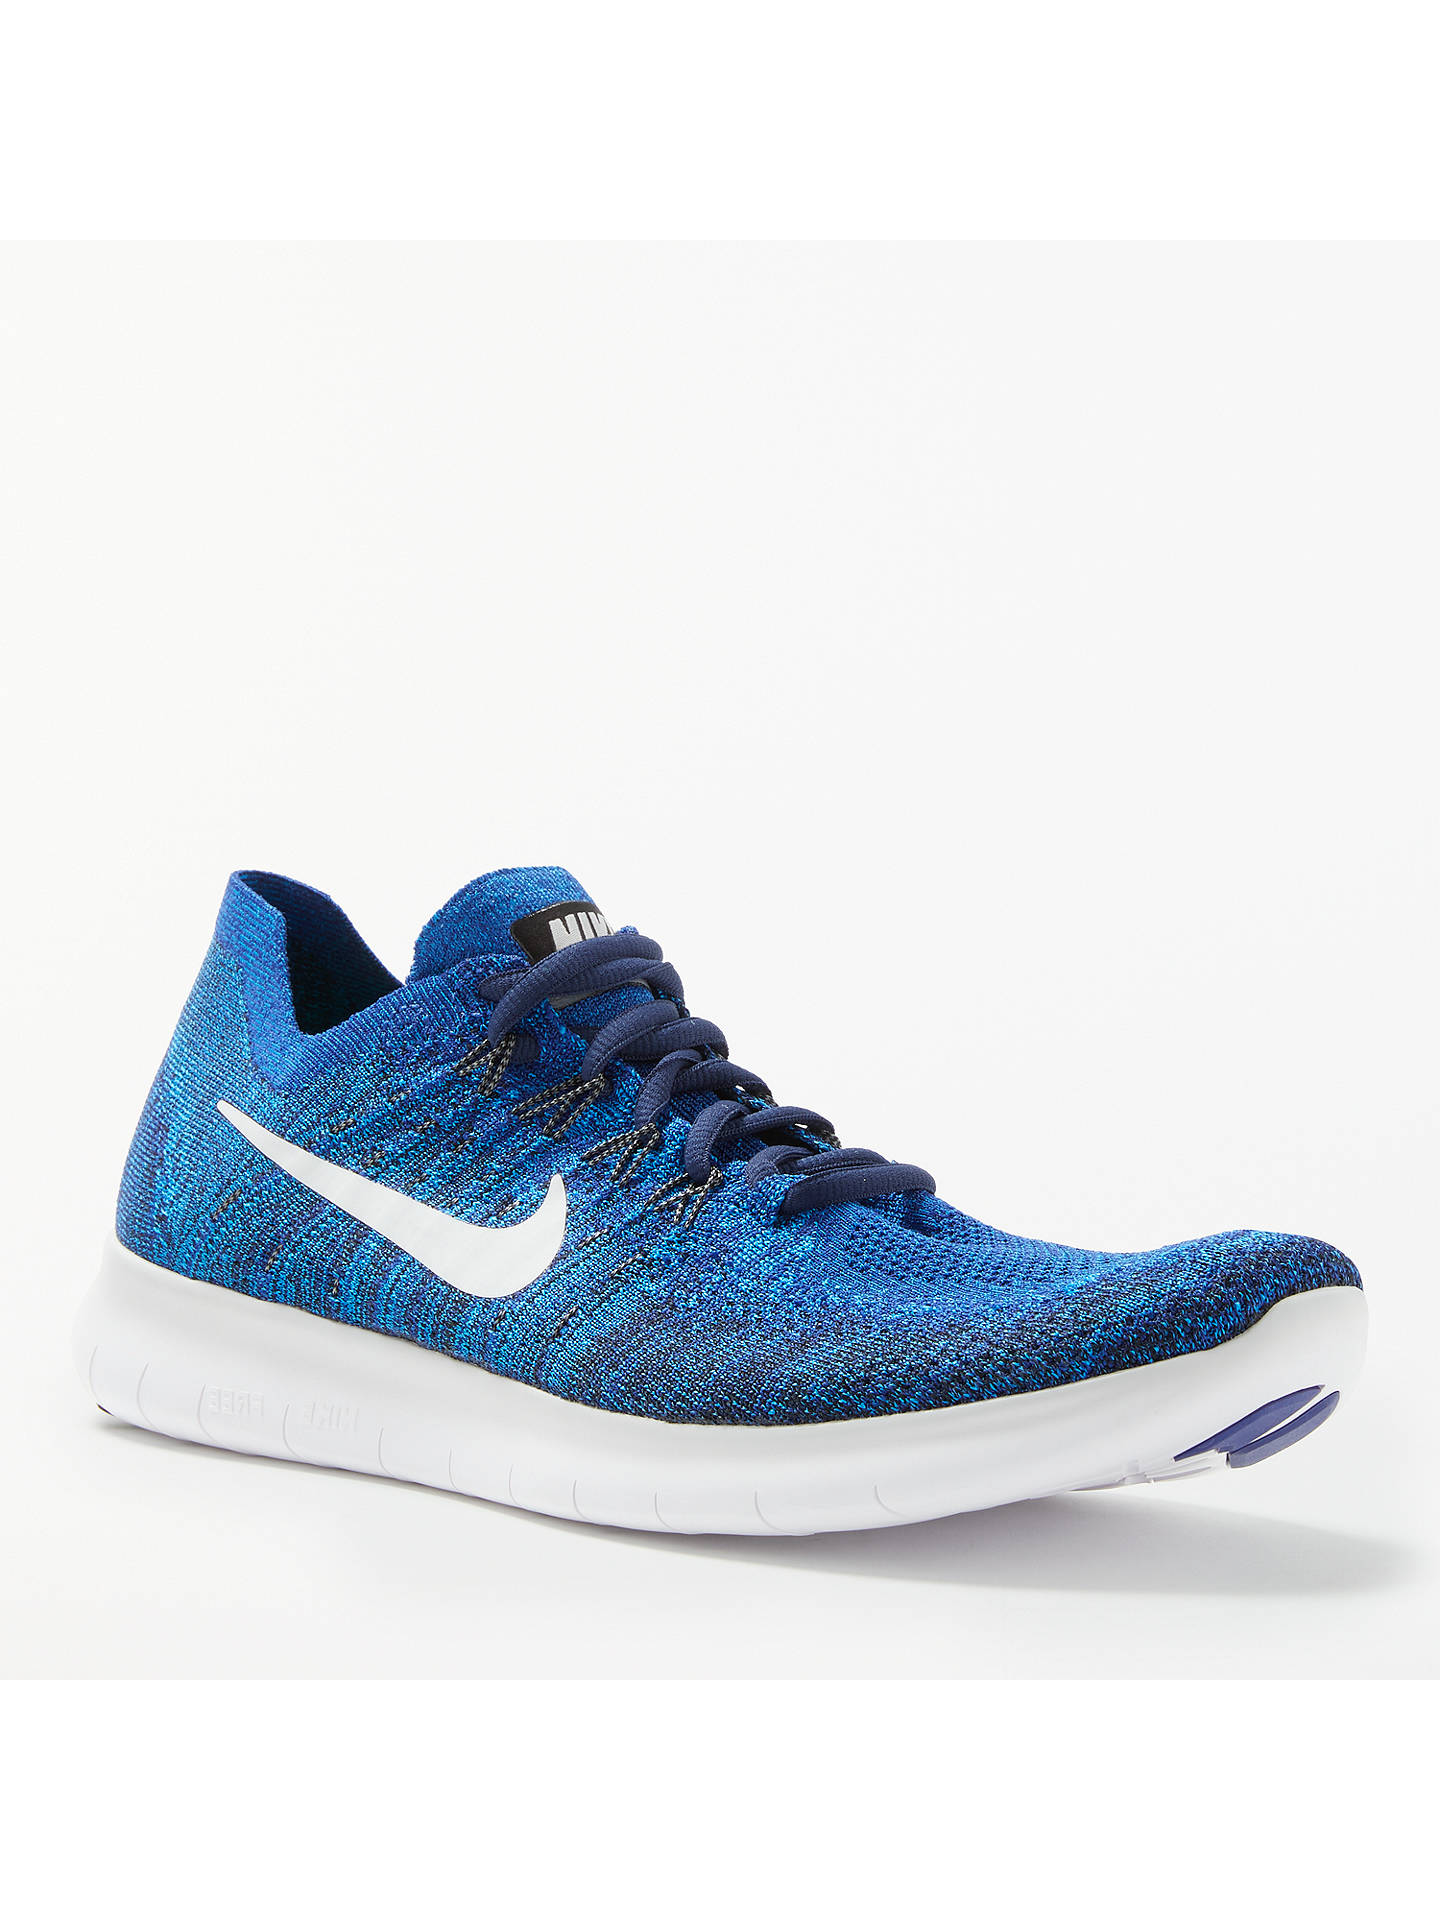 6532ccf23a3 Nike Free RN Flyknit 2017 Men's Running Shoes at John Lewis & Partners